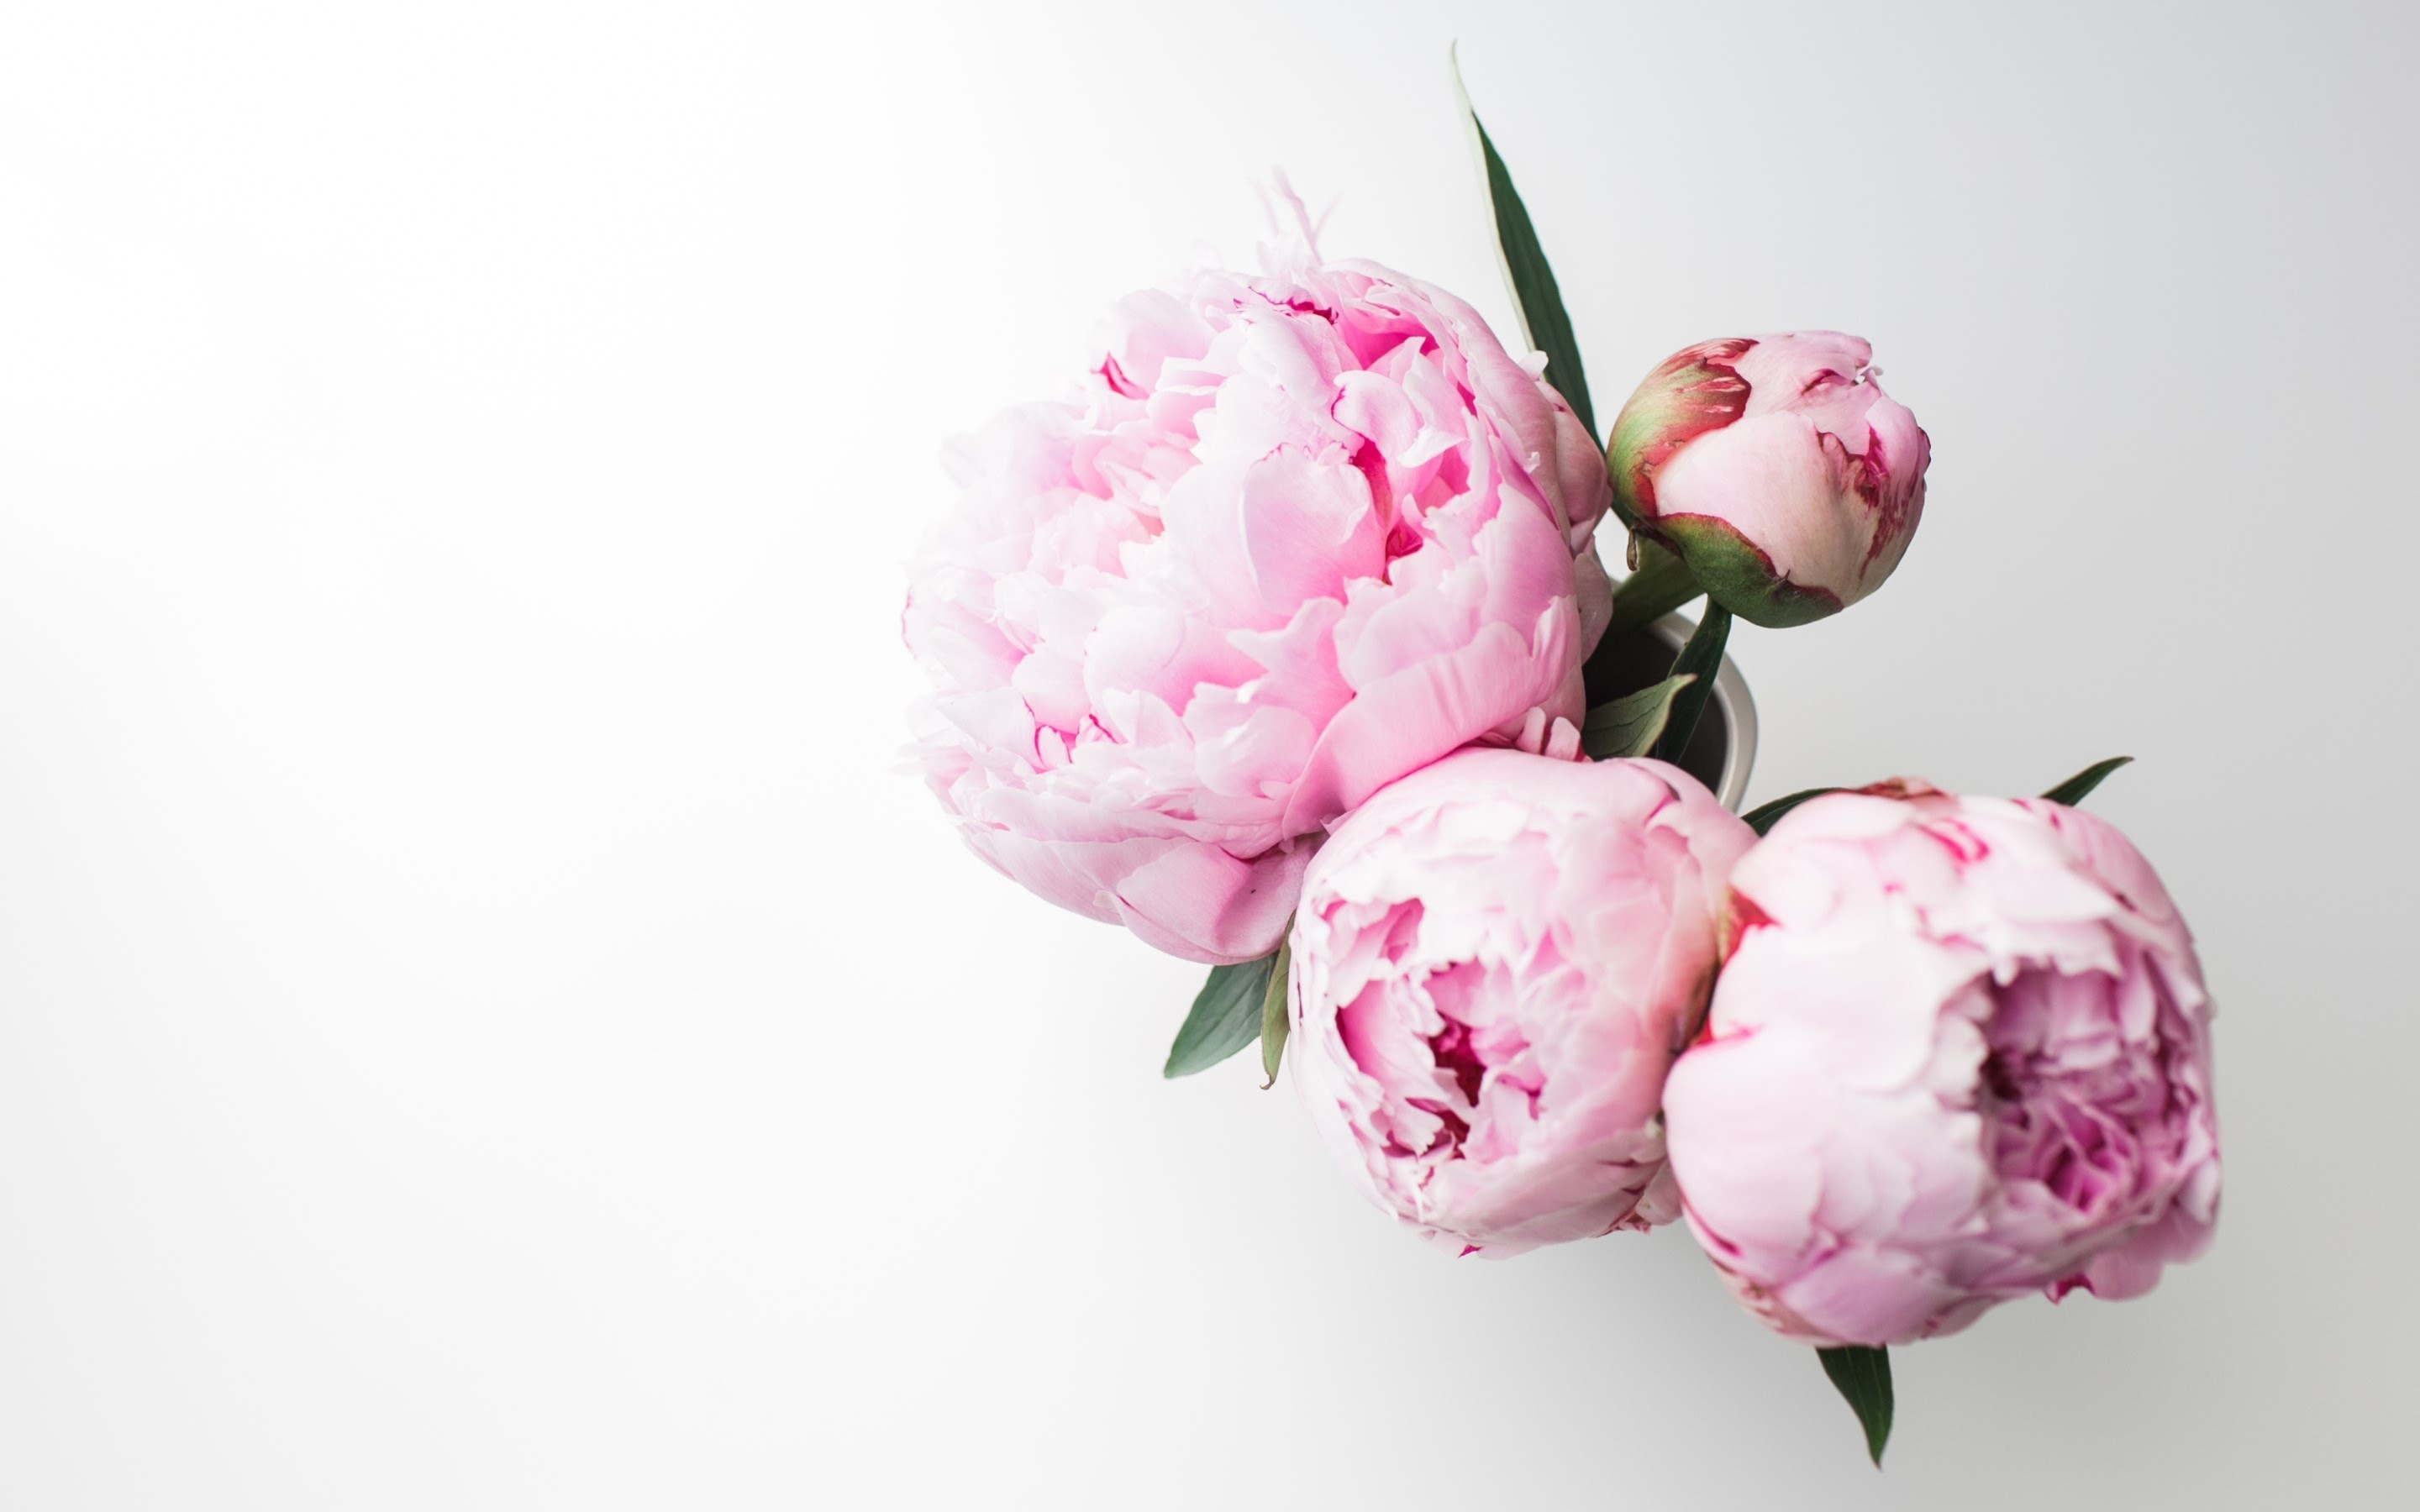 4K HD Wallpaper: Bouquet of Peonies · By Andreea with a Canon EOS 5D Mark II